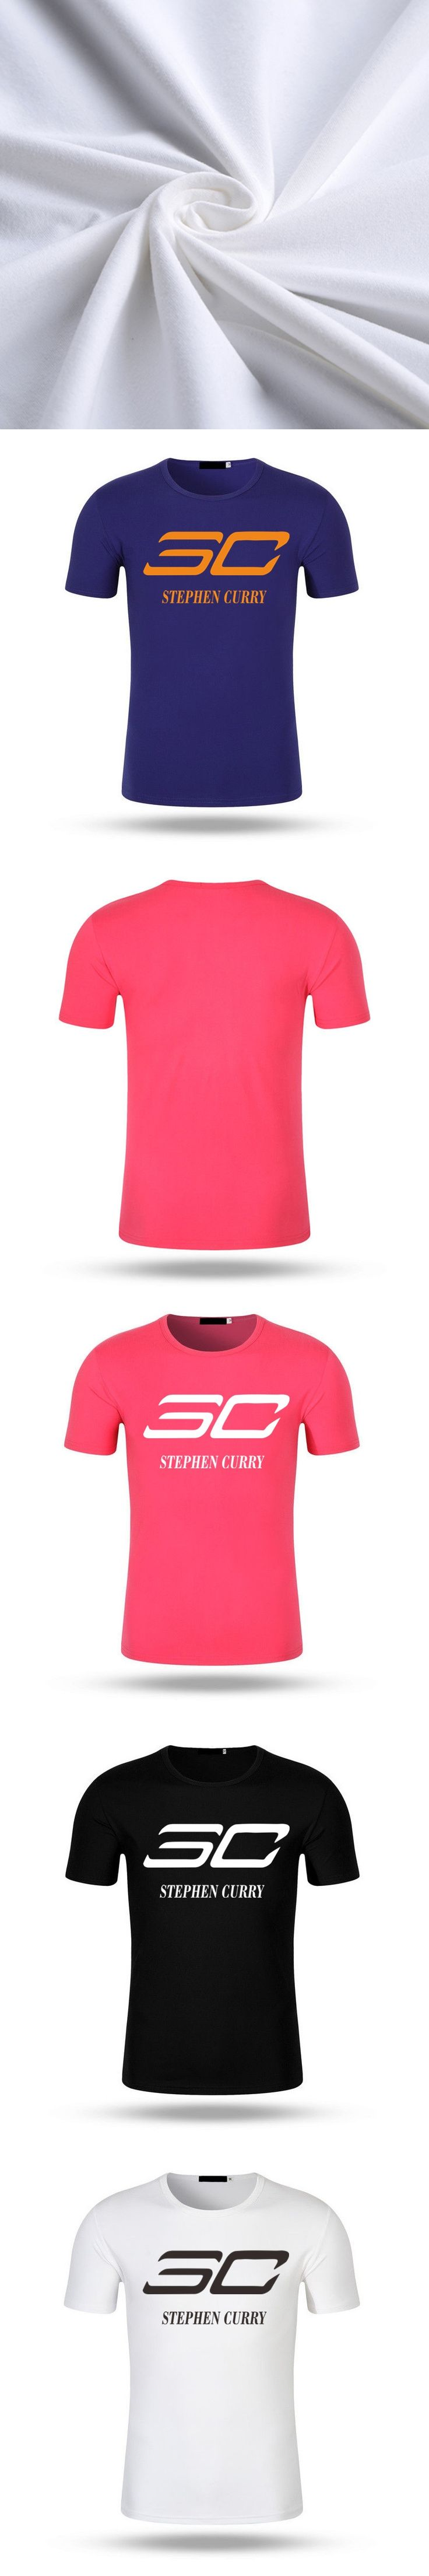 2017 Summer Fashion SC 30 T Shirt Men Fitness Stephen Curry T-shirt Casual Modal Cotton Tops Tee Shirts Unisex Style